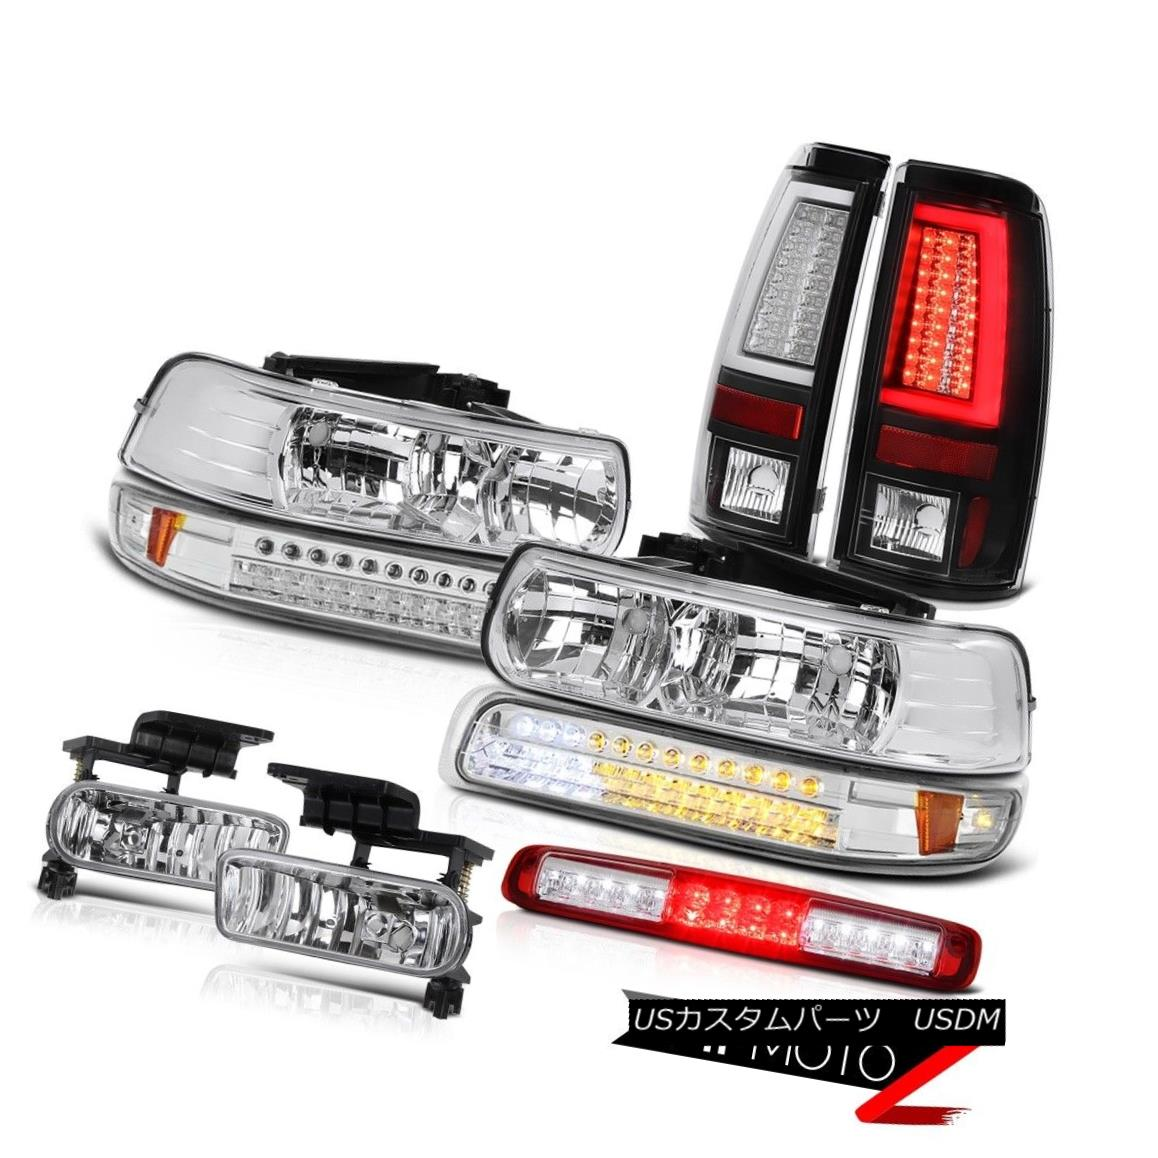 テールライト 99-02 Silverado 3500HD Taillamps Bumper Lamp Headlamps Roof Cargo Foglamps LED 99-02 Silverado 3500HD Taillampsバンパーランプヘッドランプ屋根カーゴフォグランプLED